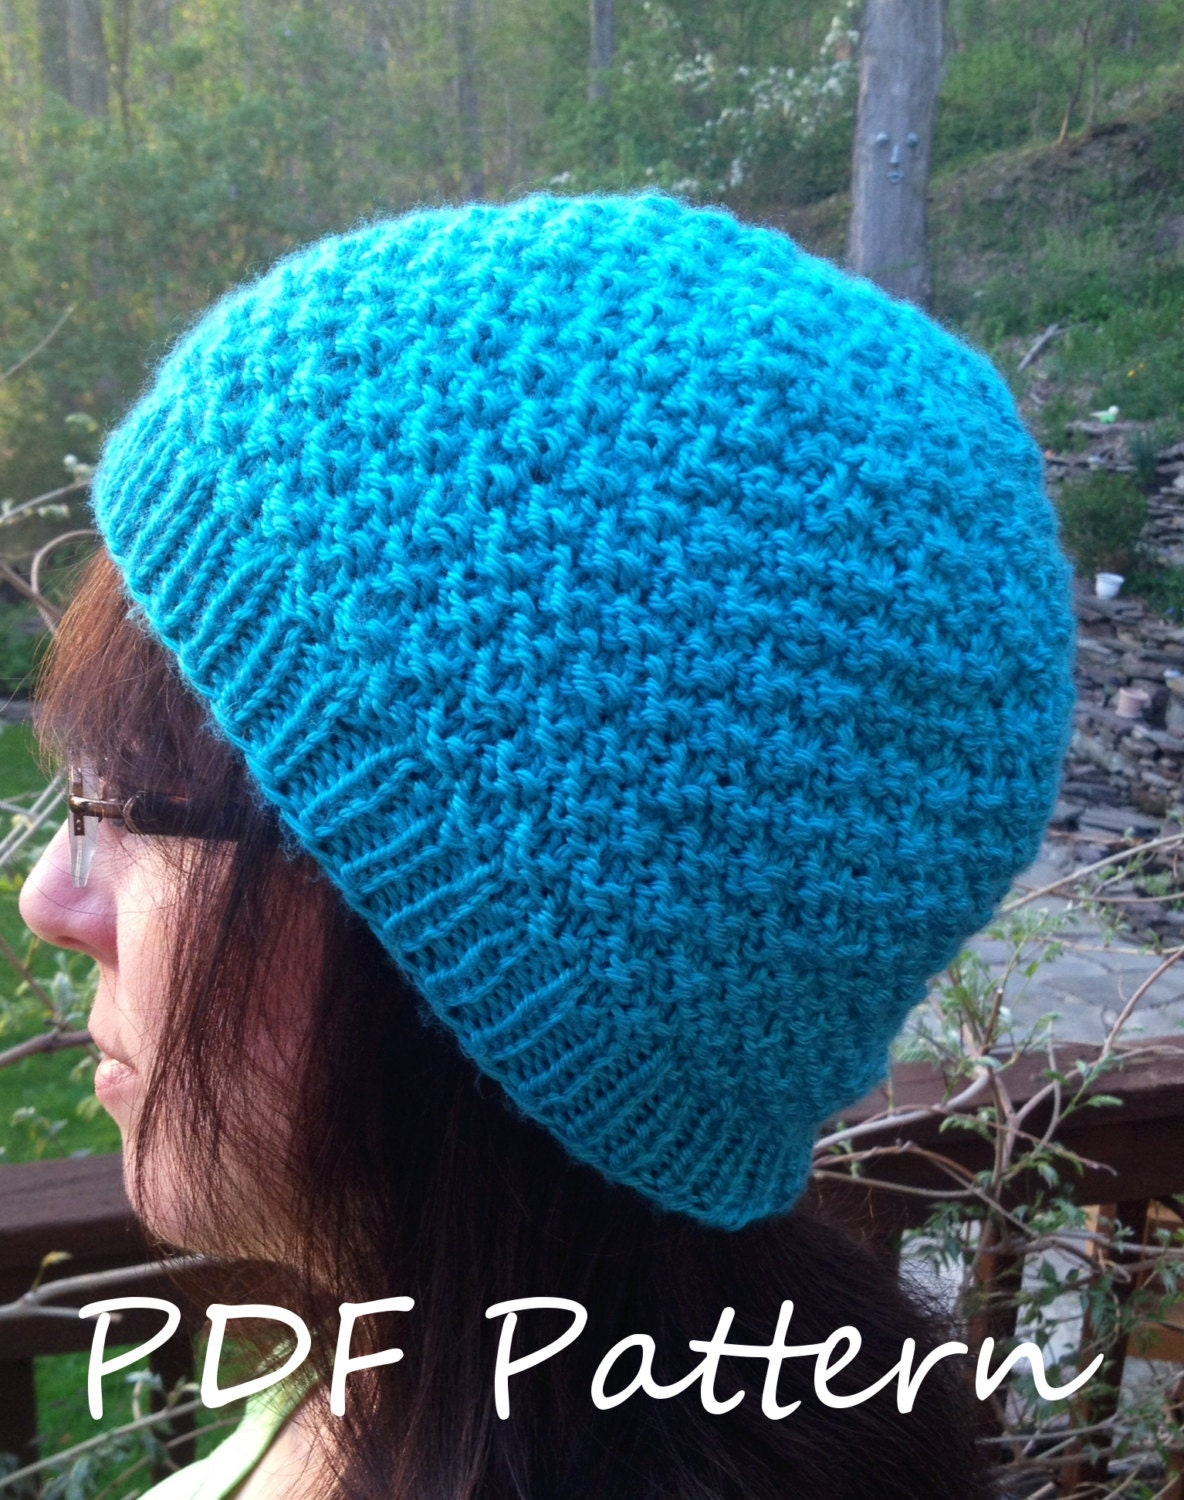 Double Seed Stitch Knitting In The Round : Pdf knitting pattern double seed stitch knit by lawsofknitting